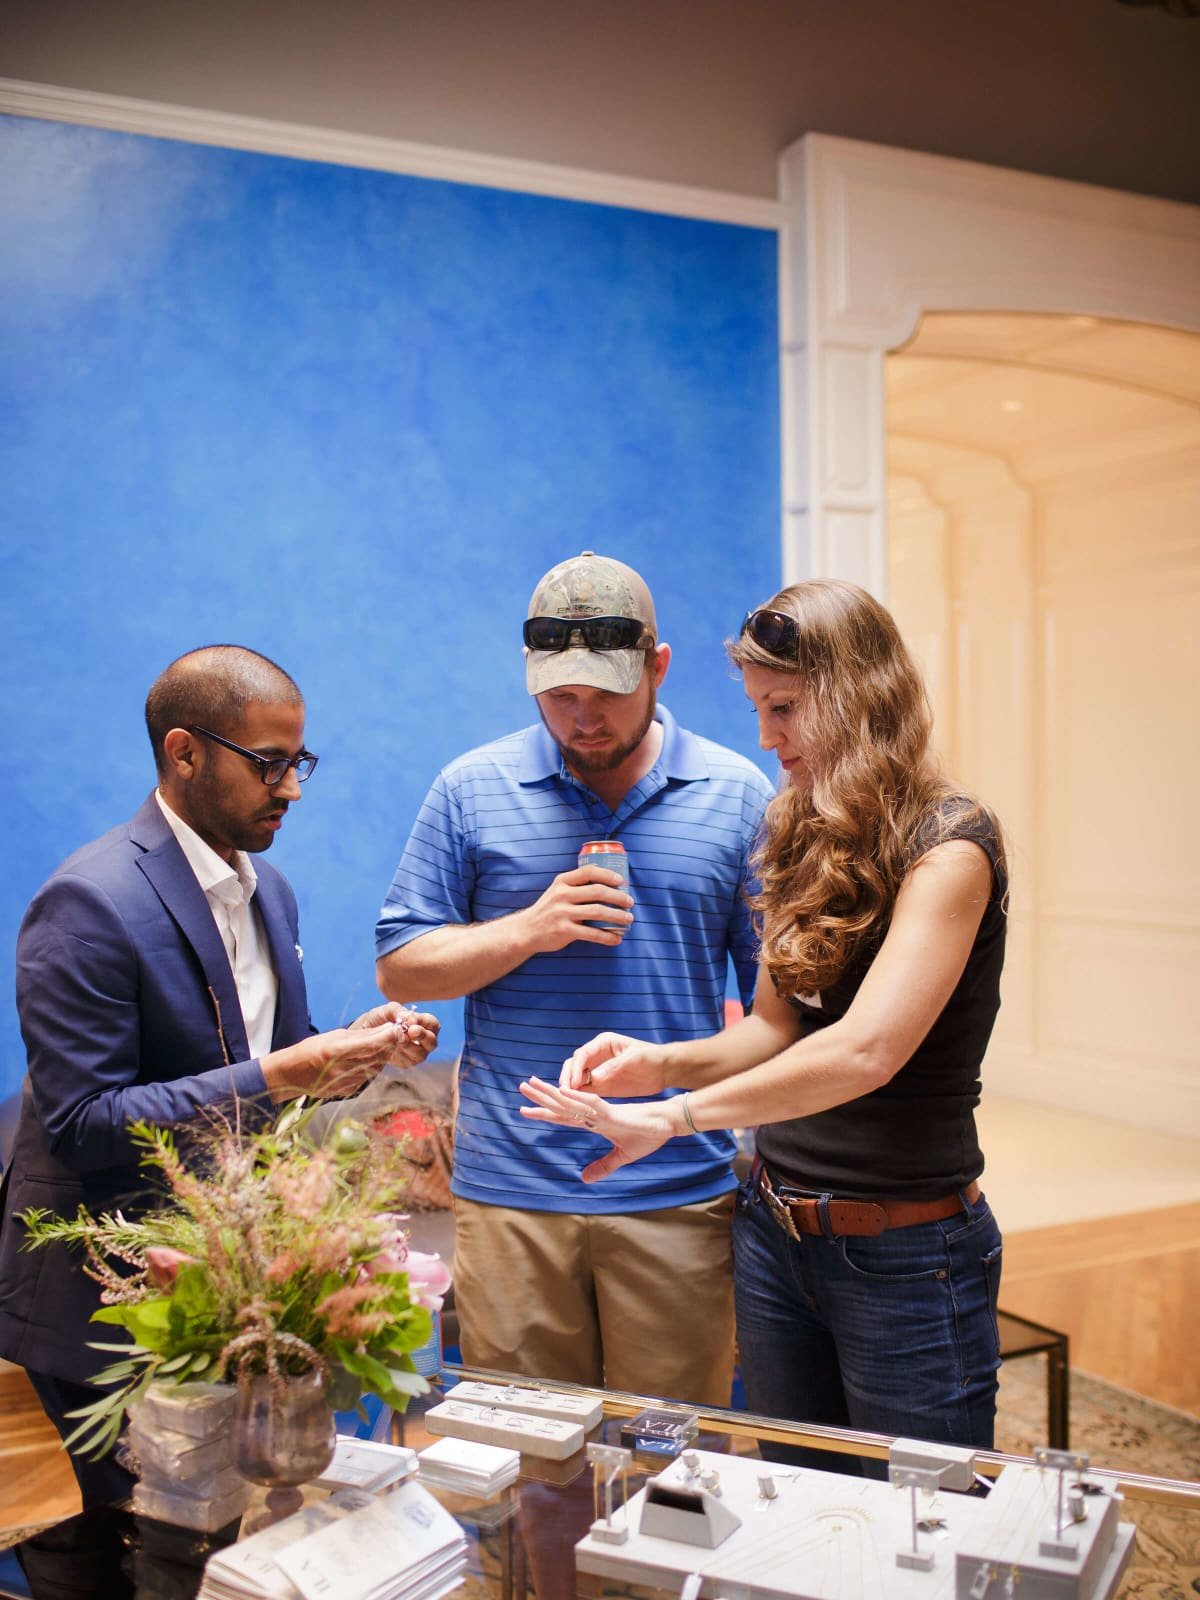 BHLDN ILA engagement event Vikas Sodhani helps a couple pick out a ring